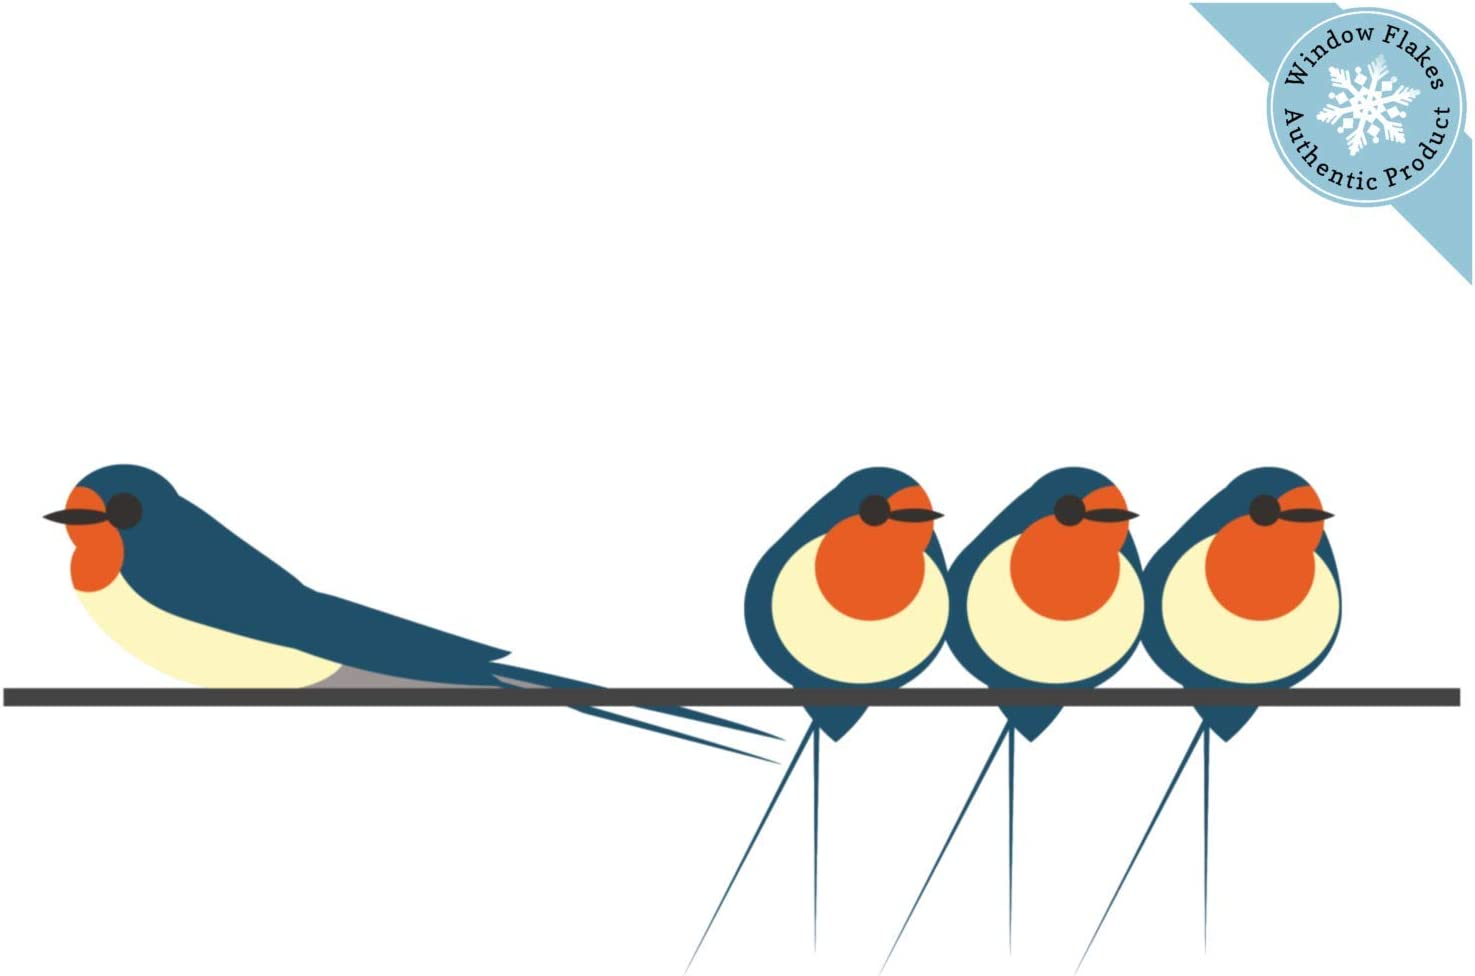 4 Swallows on a Wire Window Clings for Glass Windows and Doors | Window Decals for Birds Strikes | Anti Collision Window Stickers Decor | Decorative Bird Window Decals for Sliding Glass Doors